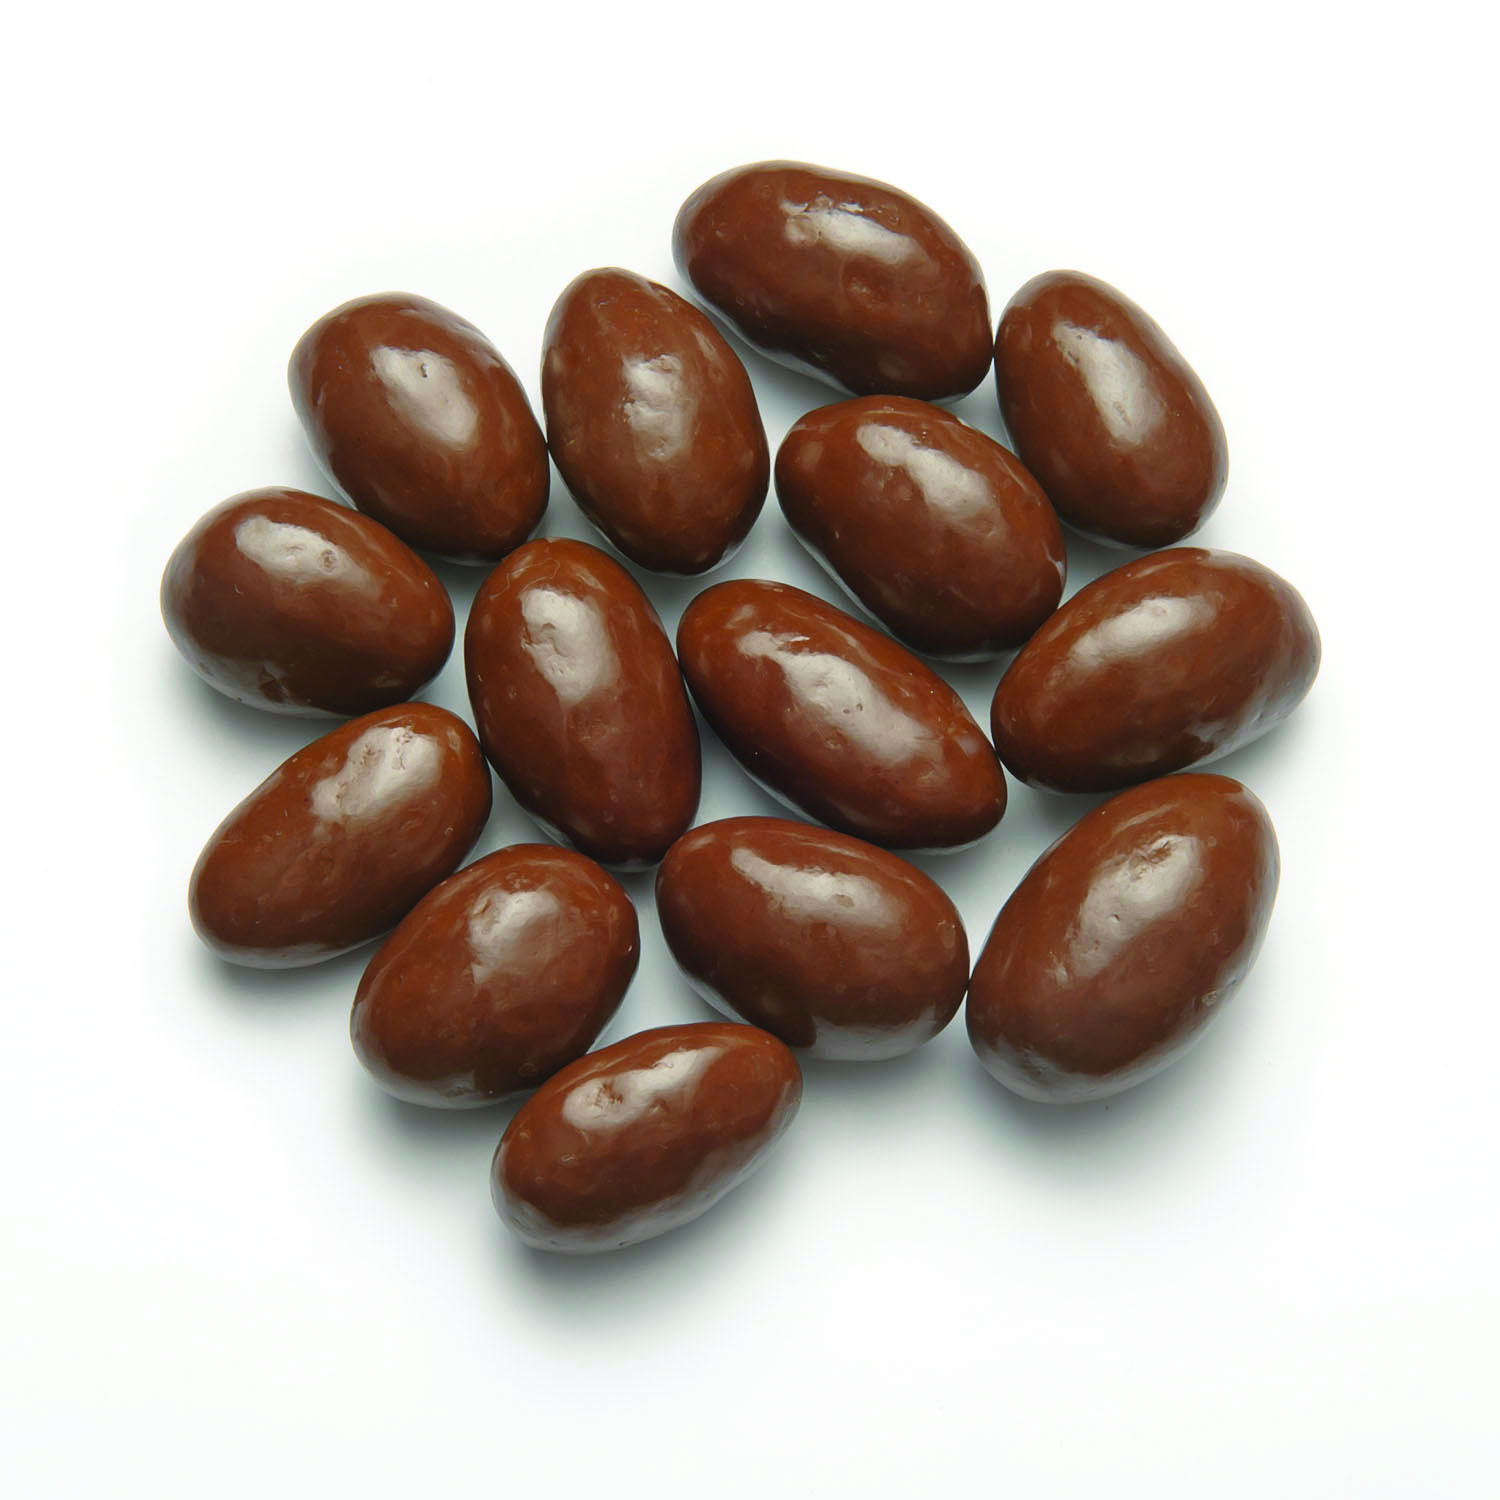 A cluster of Milk Chocolate Almonds